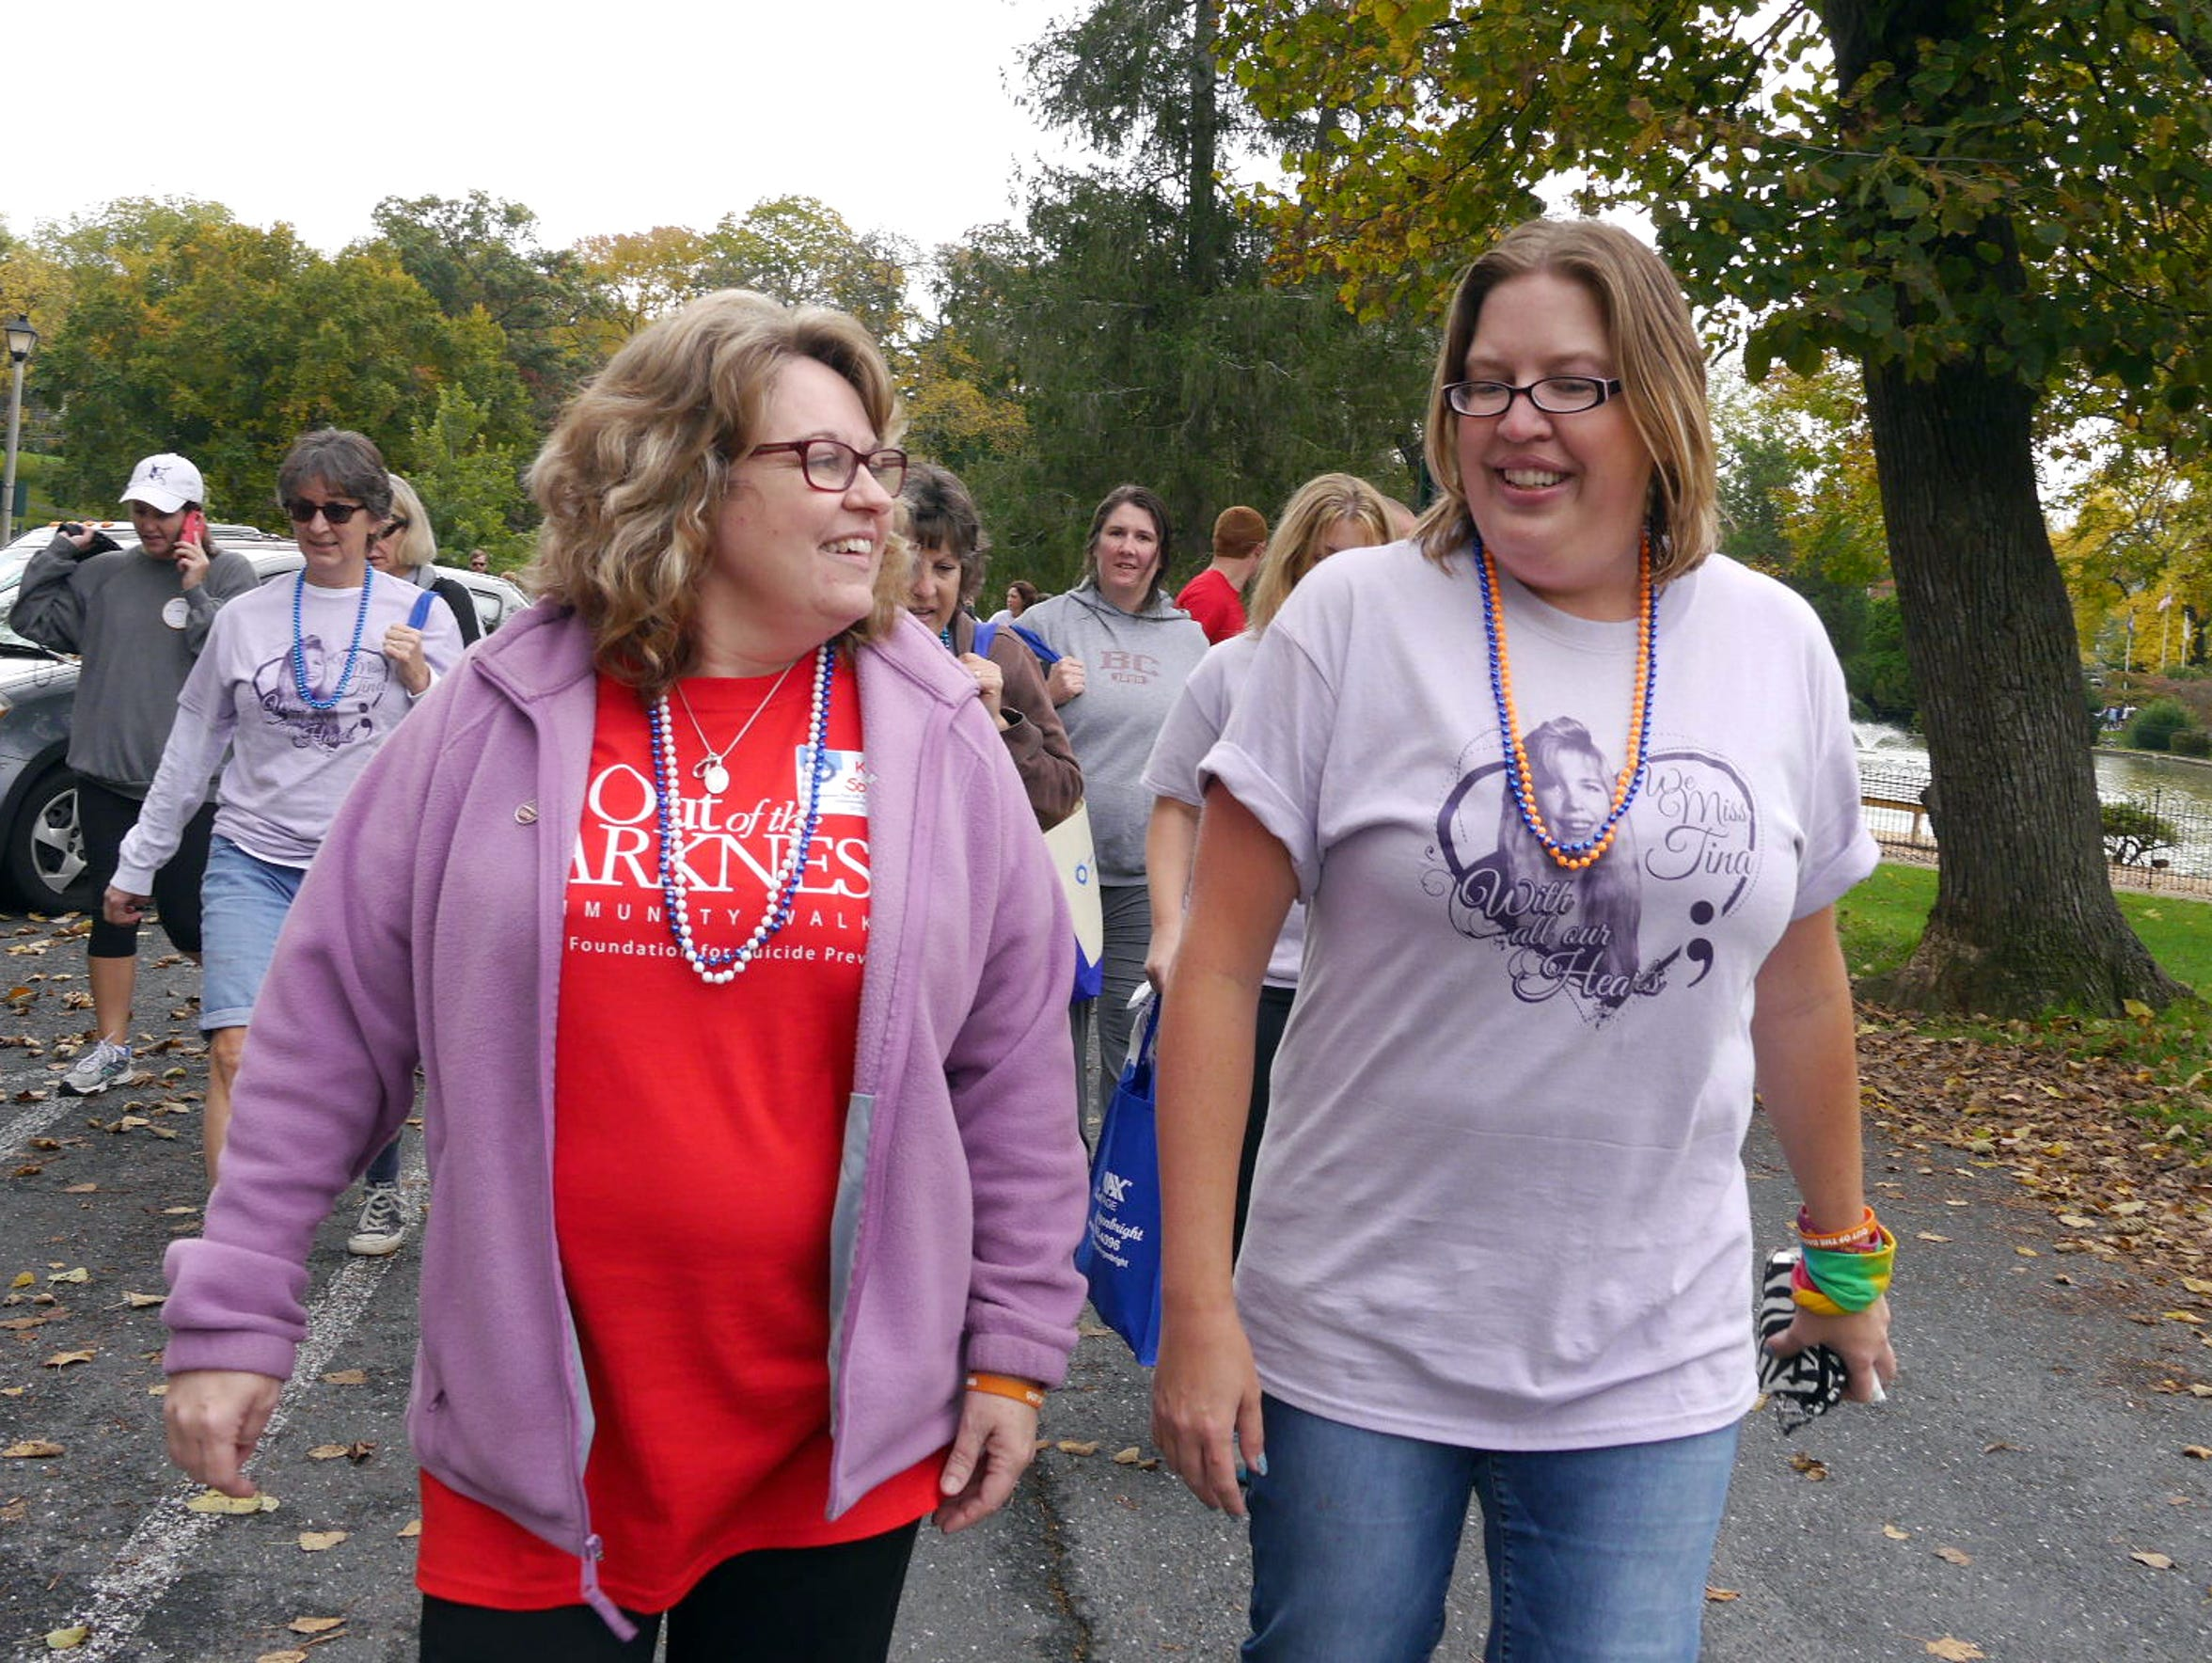 Kim Sours, left, who organized Staunton's Out of the